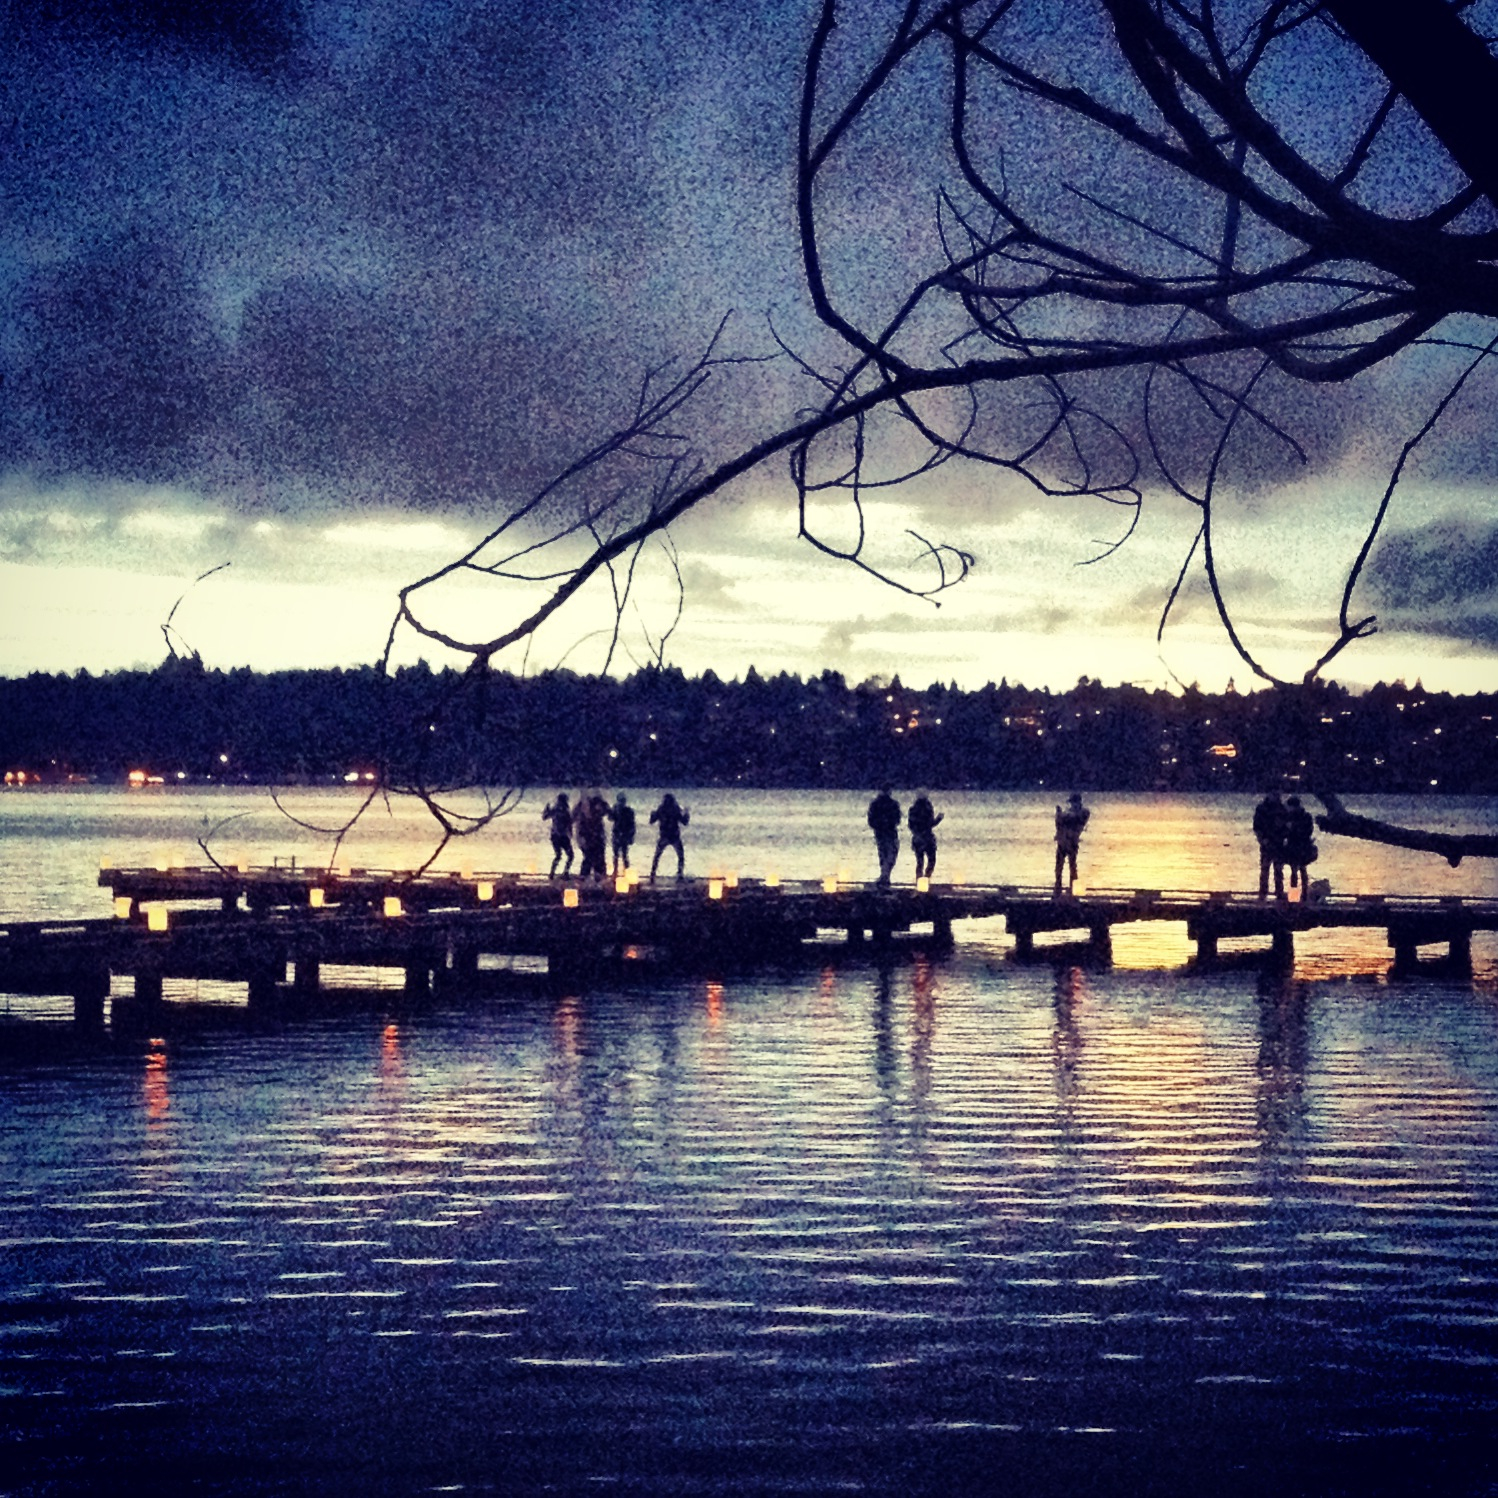 Taken from the Greenlake path.